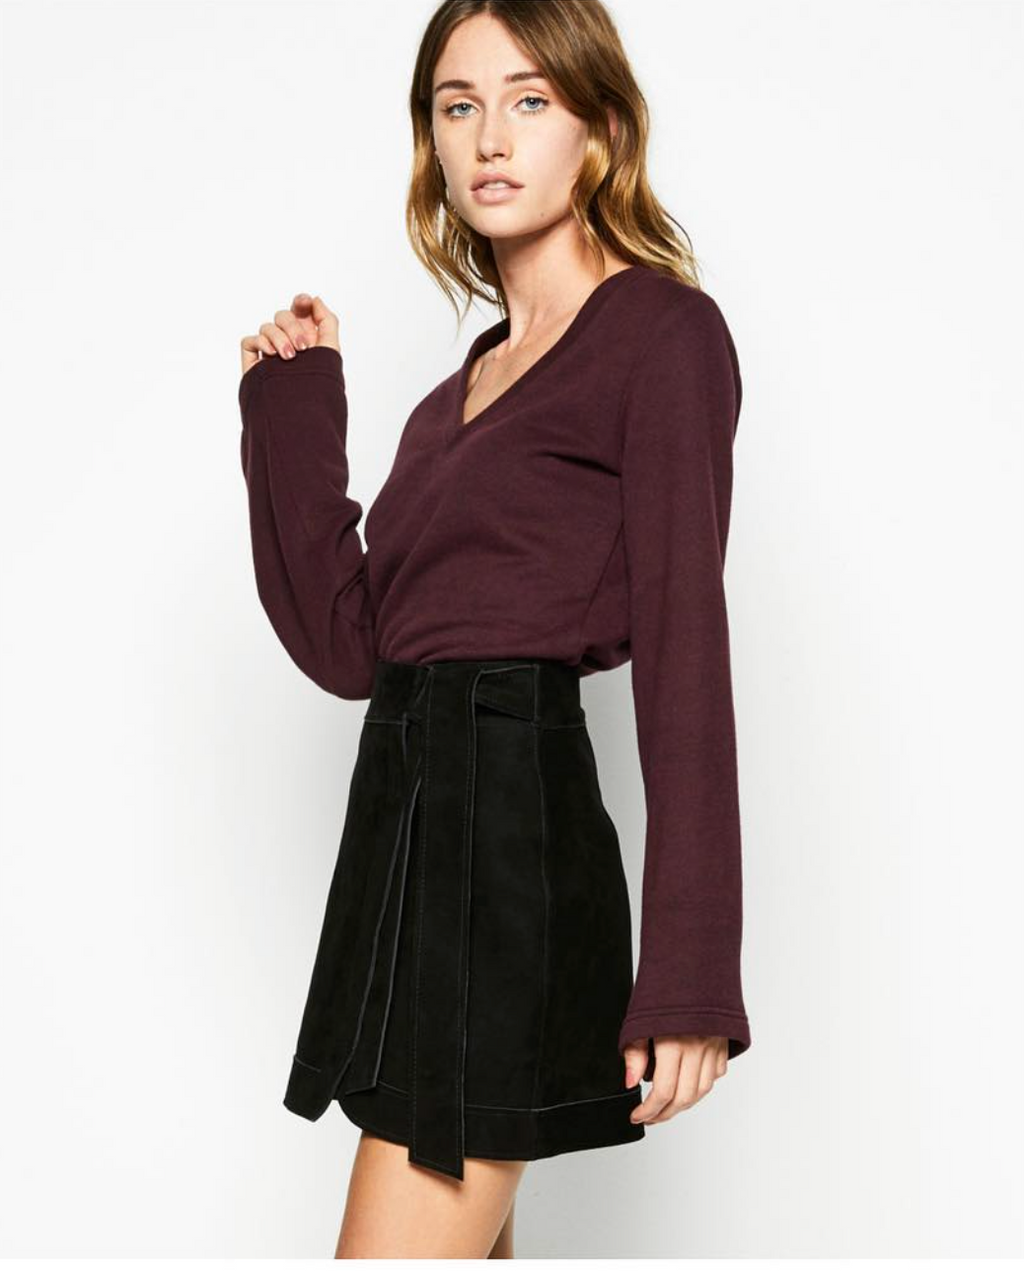 Sunday Skirt - Black Suede Genuine Leather